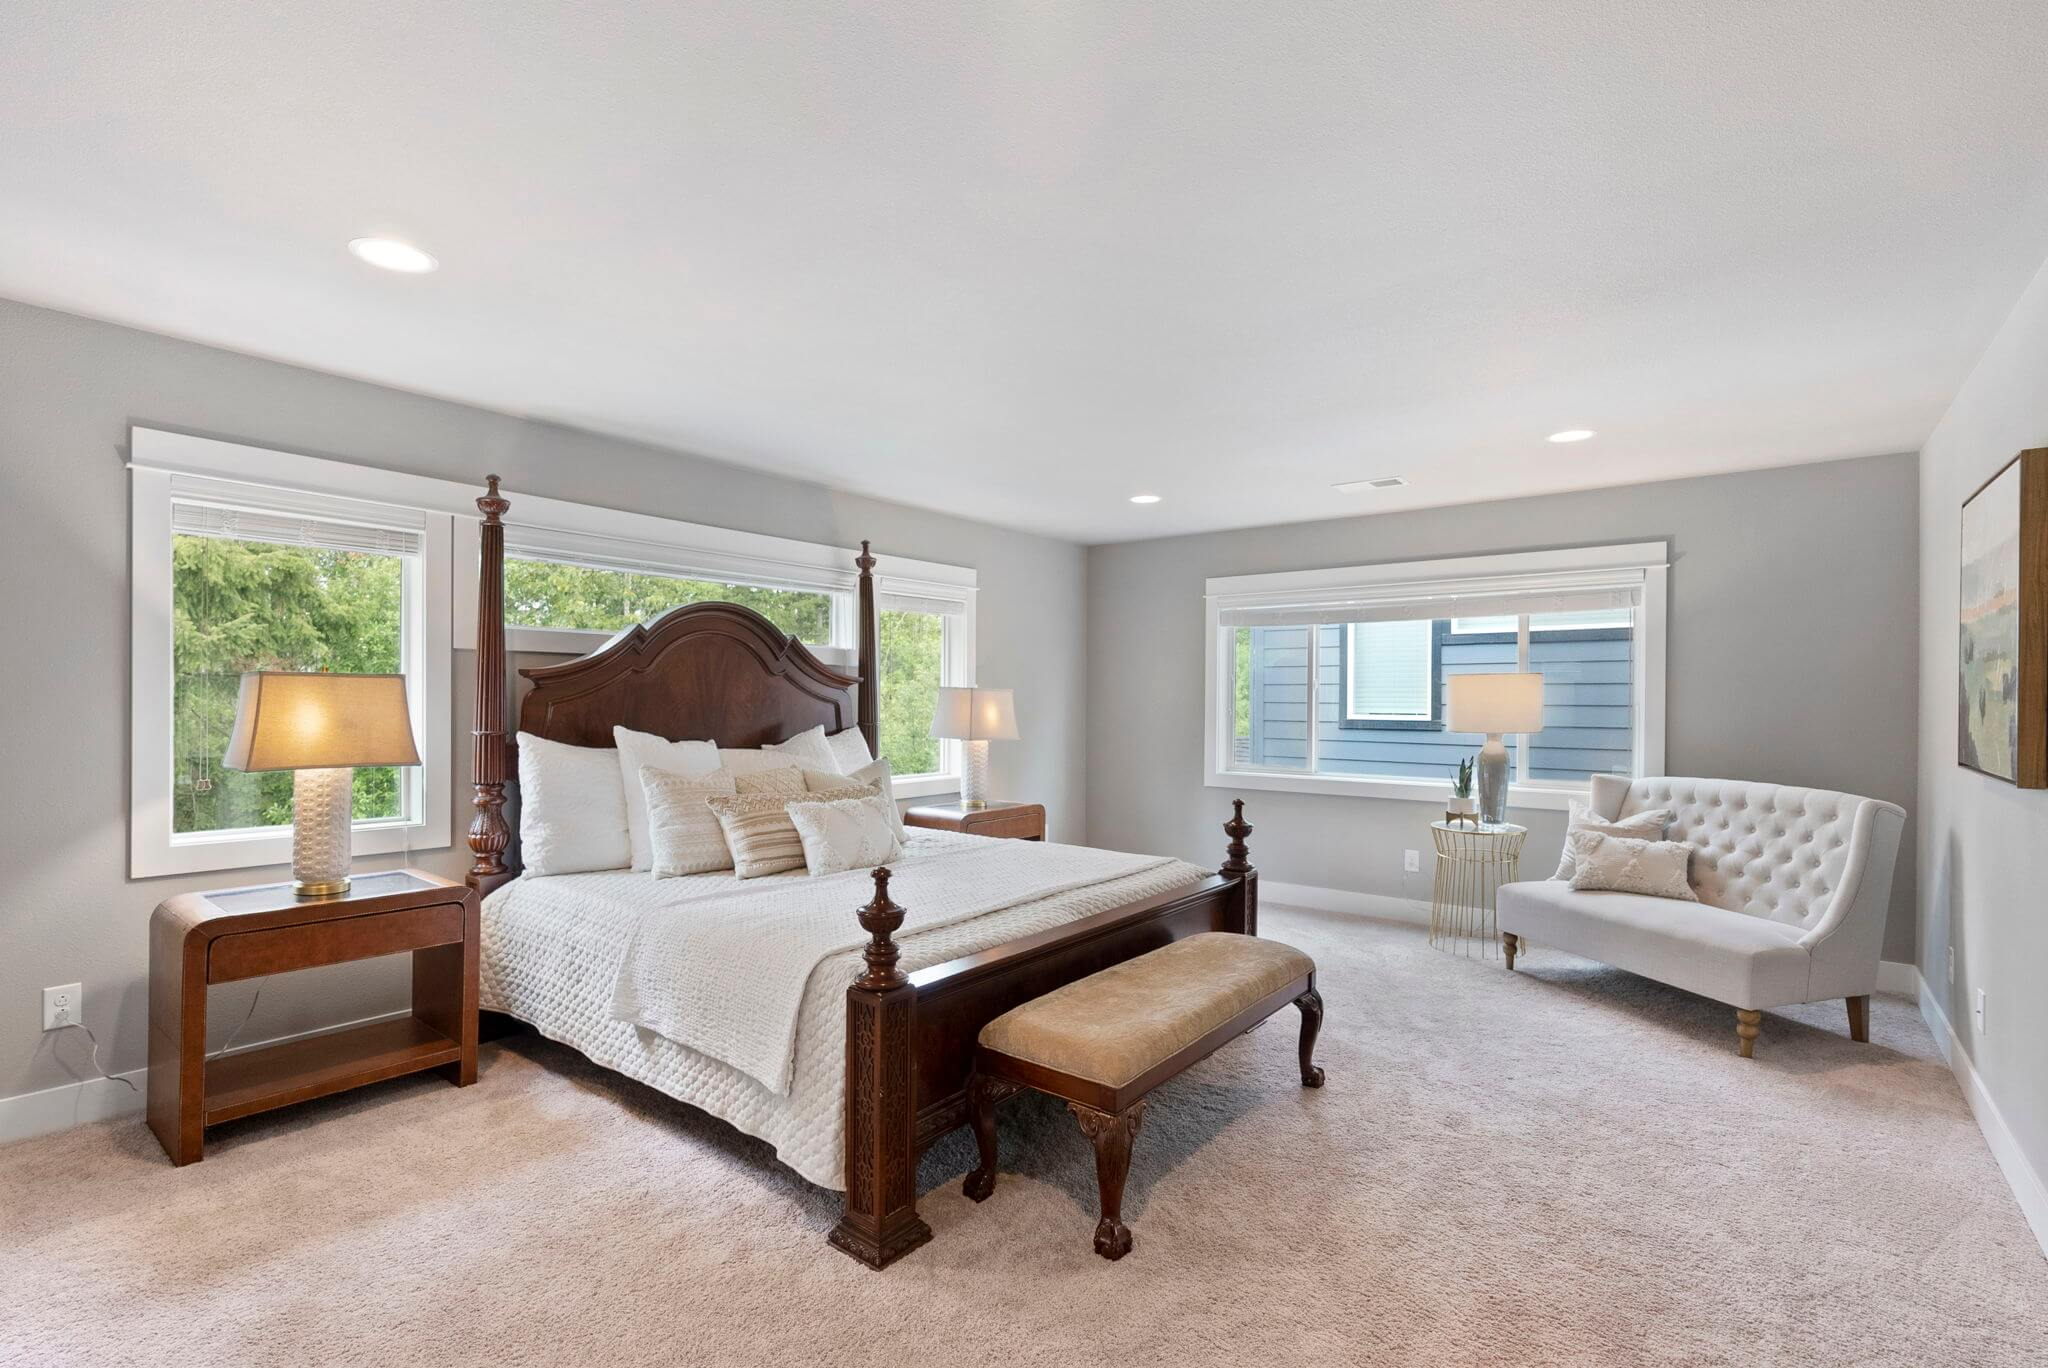 Spacious primary bedroom with sitting area